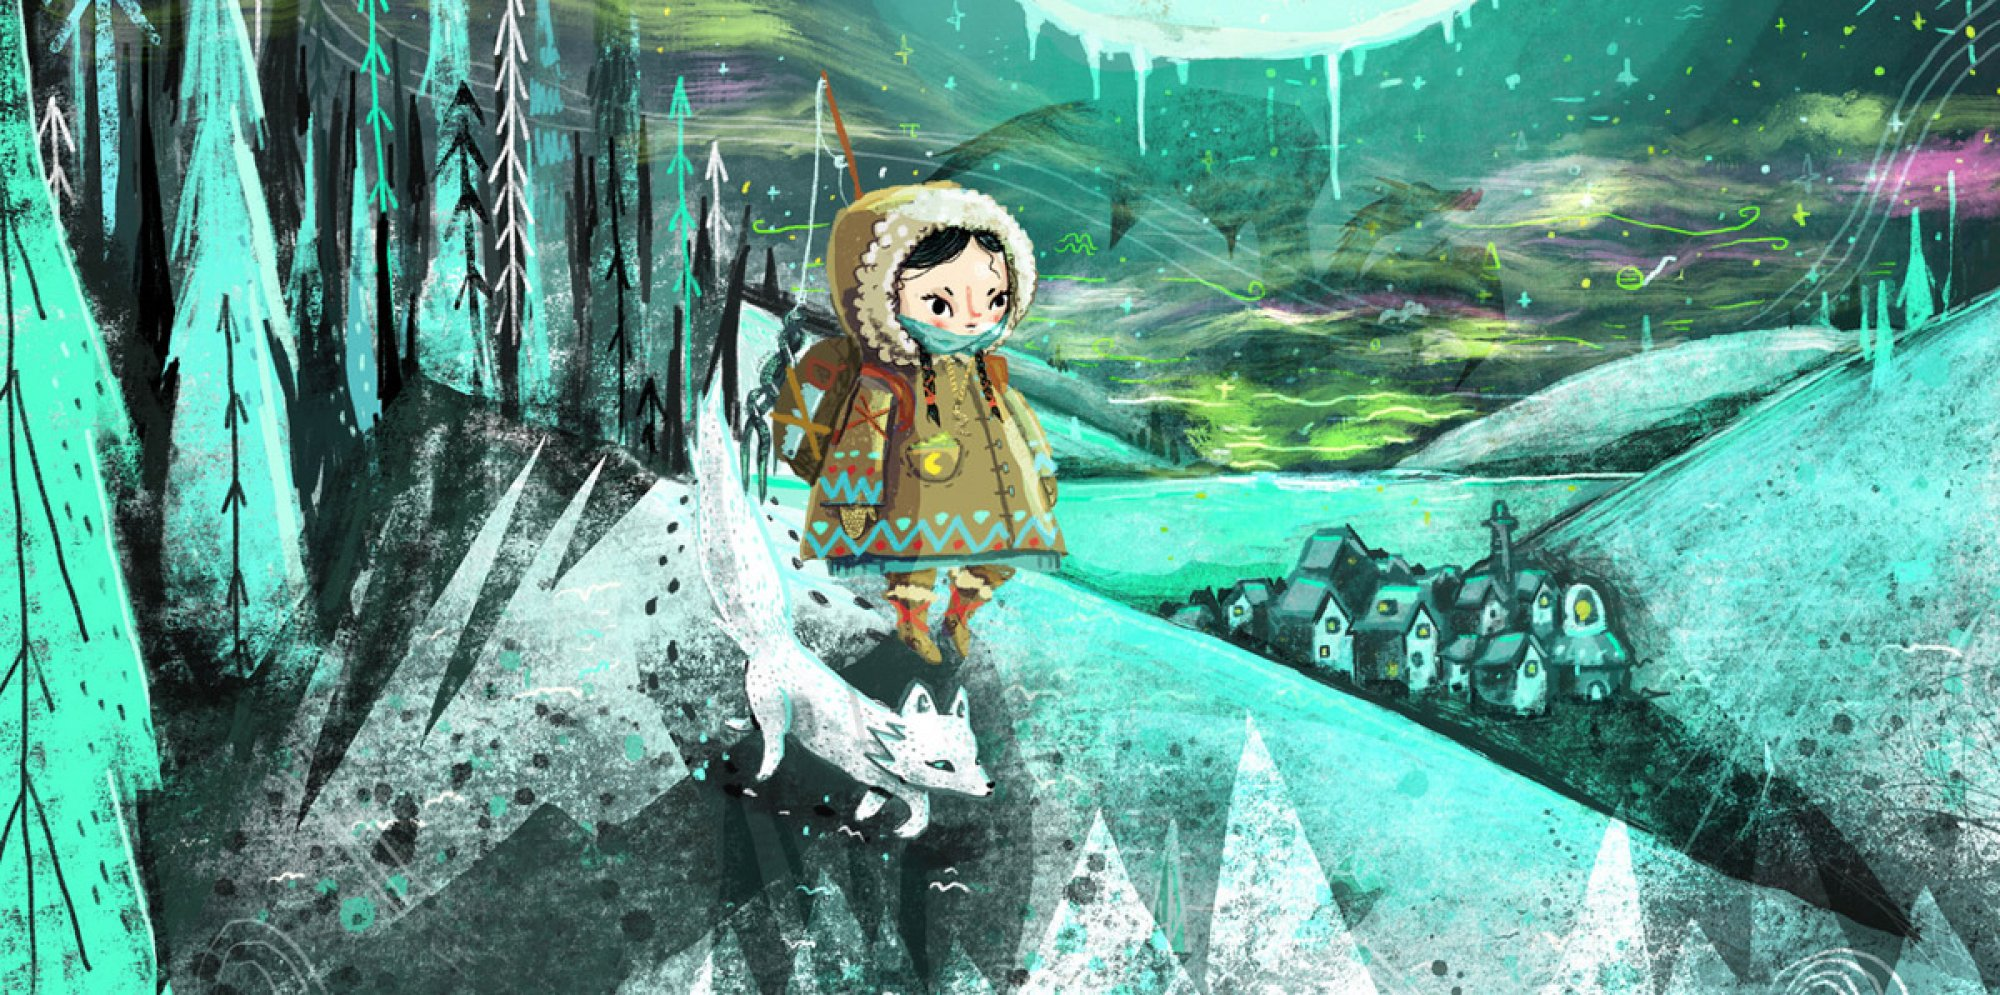 Under the Frozen Moon: an inuit child and a white dog walking along a path among a forest and a distant village under a pale moon. The image is tinted in green light.